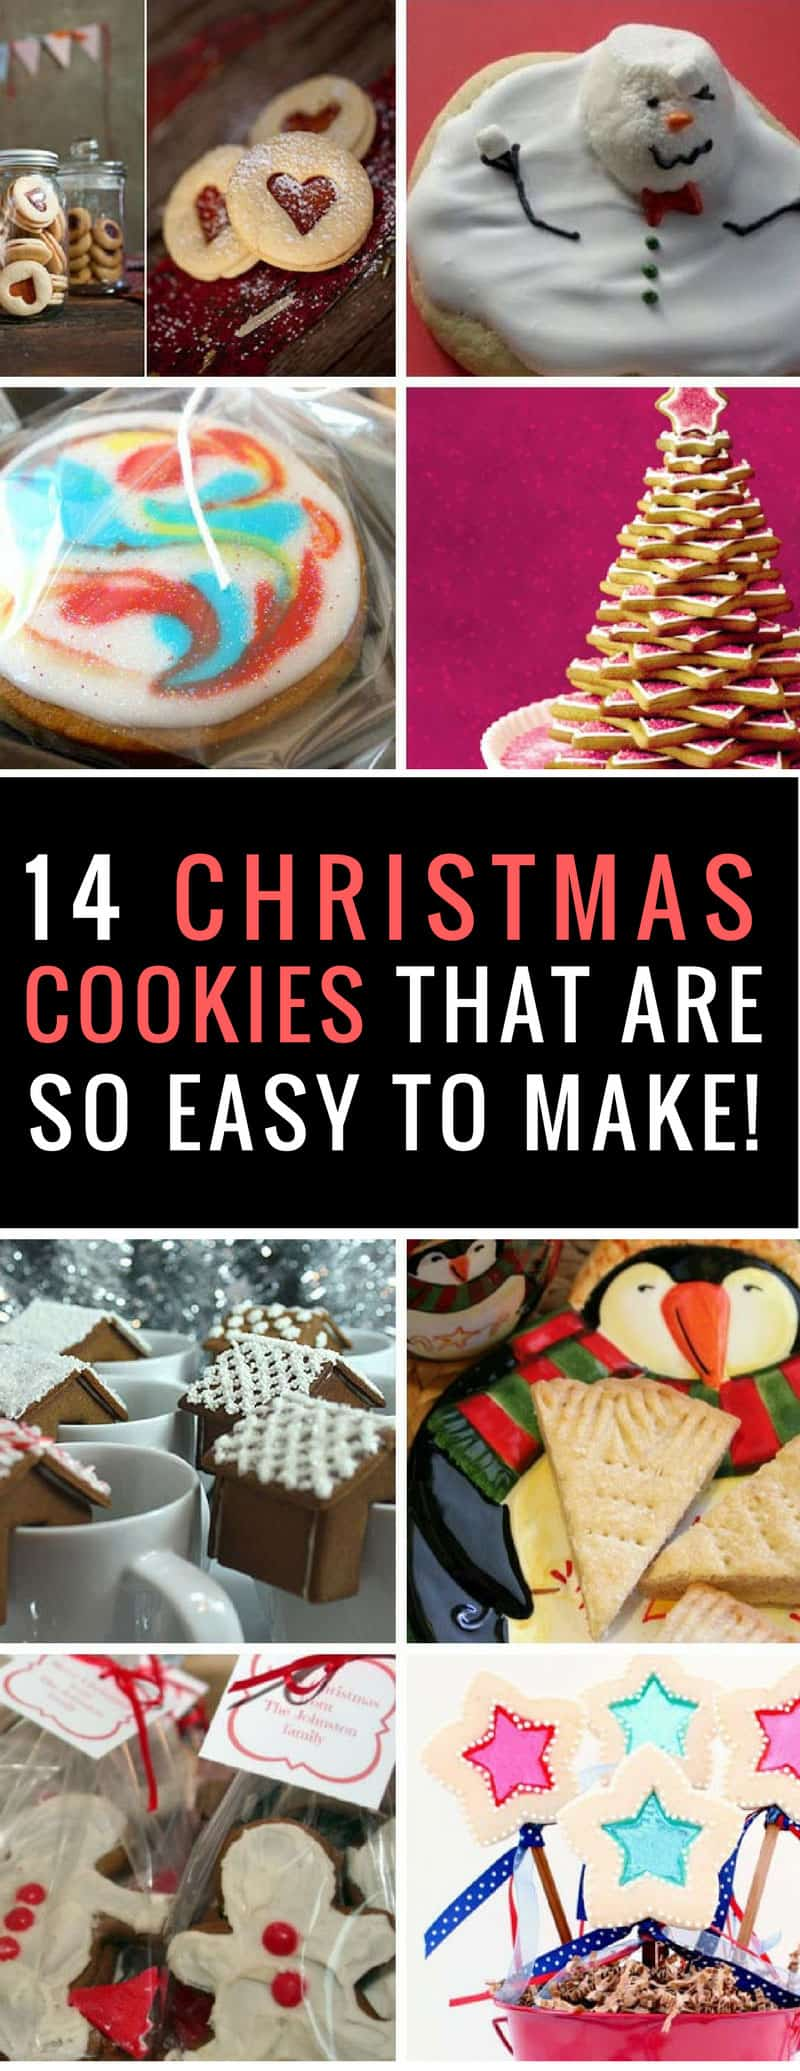 Holiday Cookie Recipes - so many adorable recipes here the whole family will enjoy making them as much as eating them! Thanks for sharing!